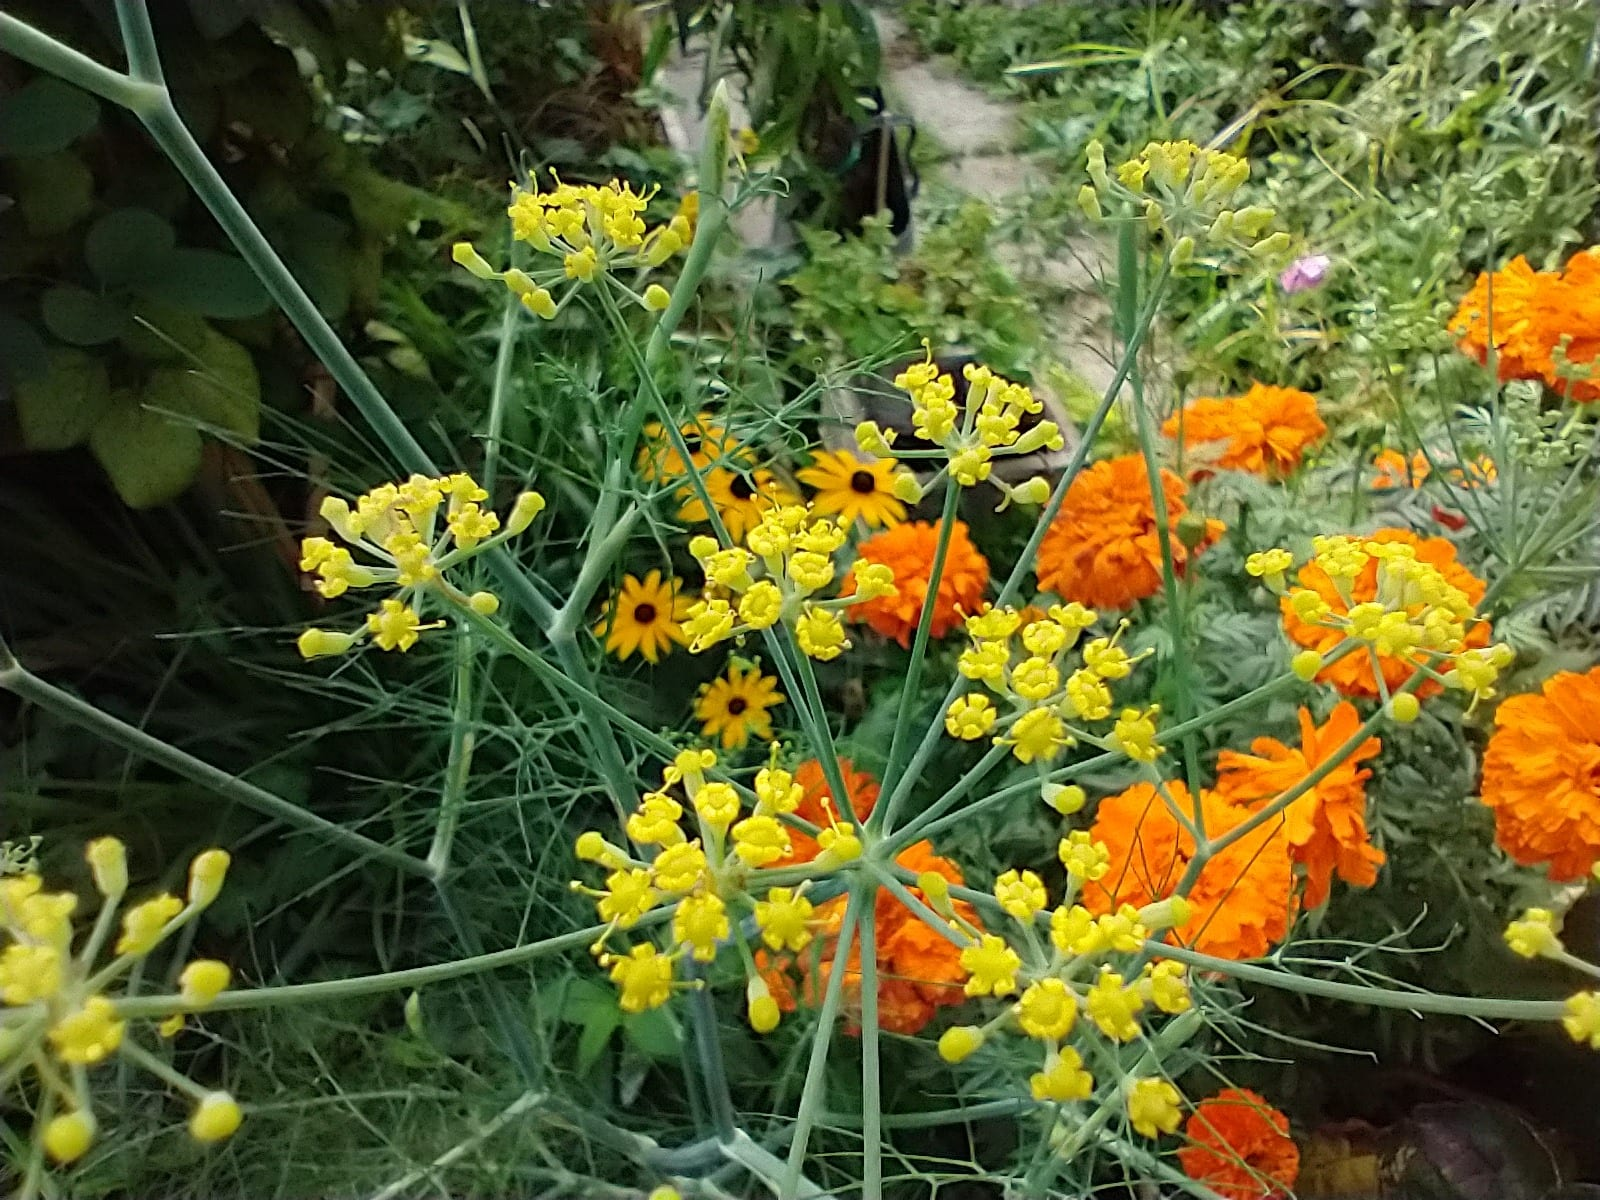 fennel flowers yellow umbels